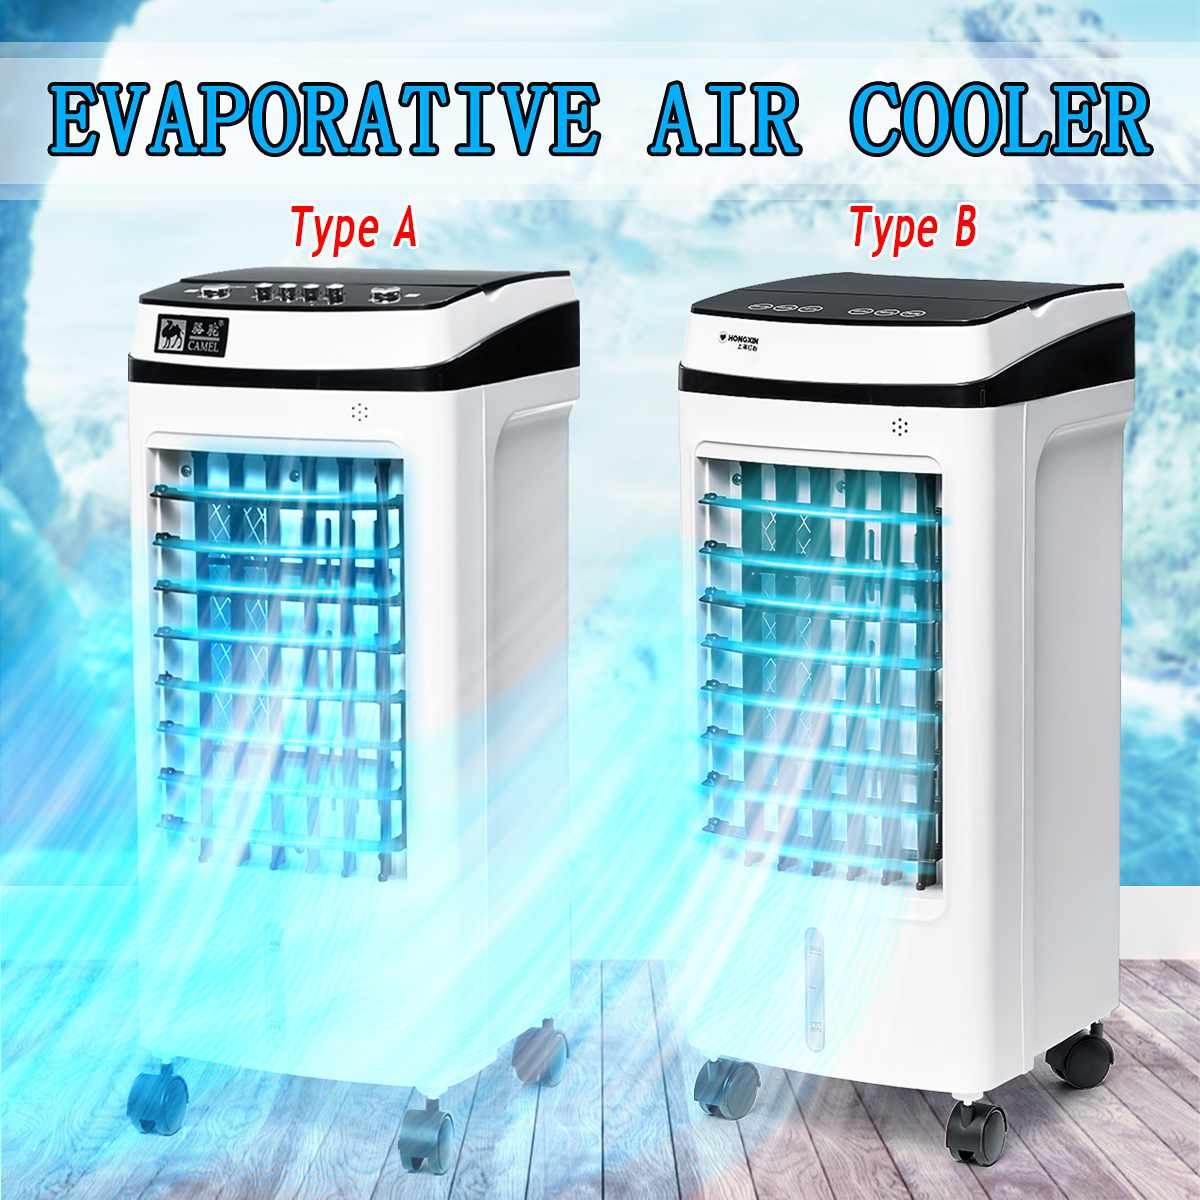 220V 50Hz Evaporative Air Conditioner Cooler Fan Ice Purifier Humidifier Remote Control 3 Wind Modes Wide Angle Air Output220V 50Hz Evaporative Air Conditioner Cooler Fan Ice Purifier Humidifier Remote Control 3 Wind Modes Wide Angle Air Output